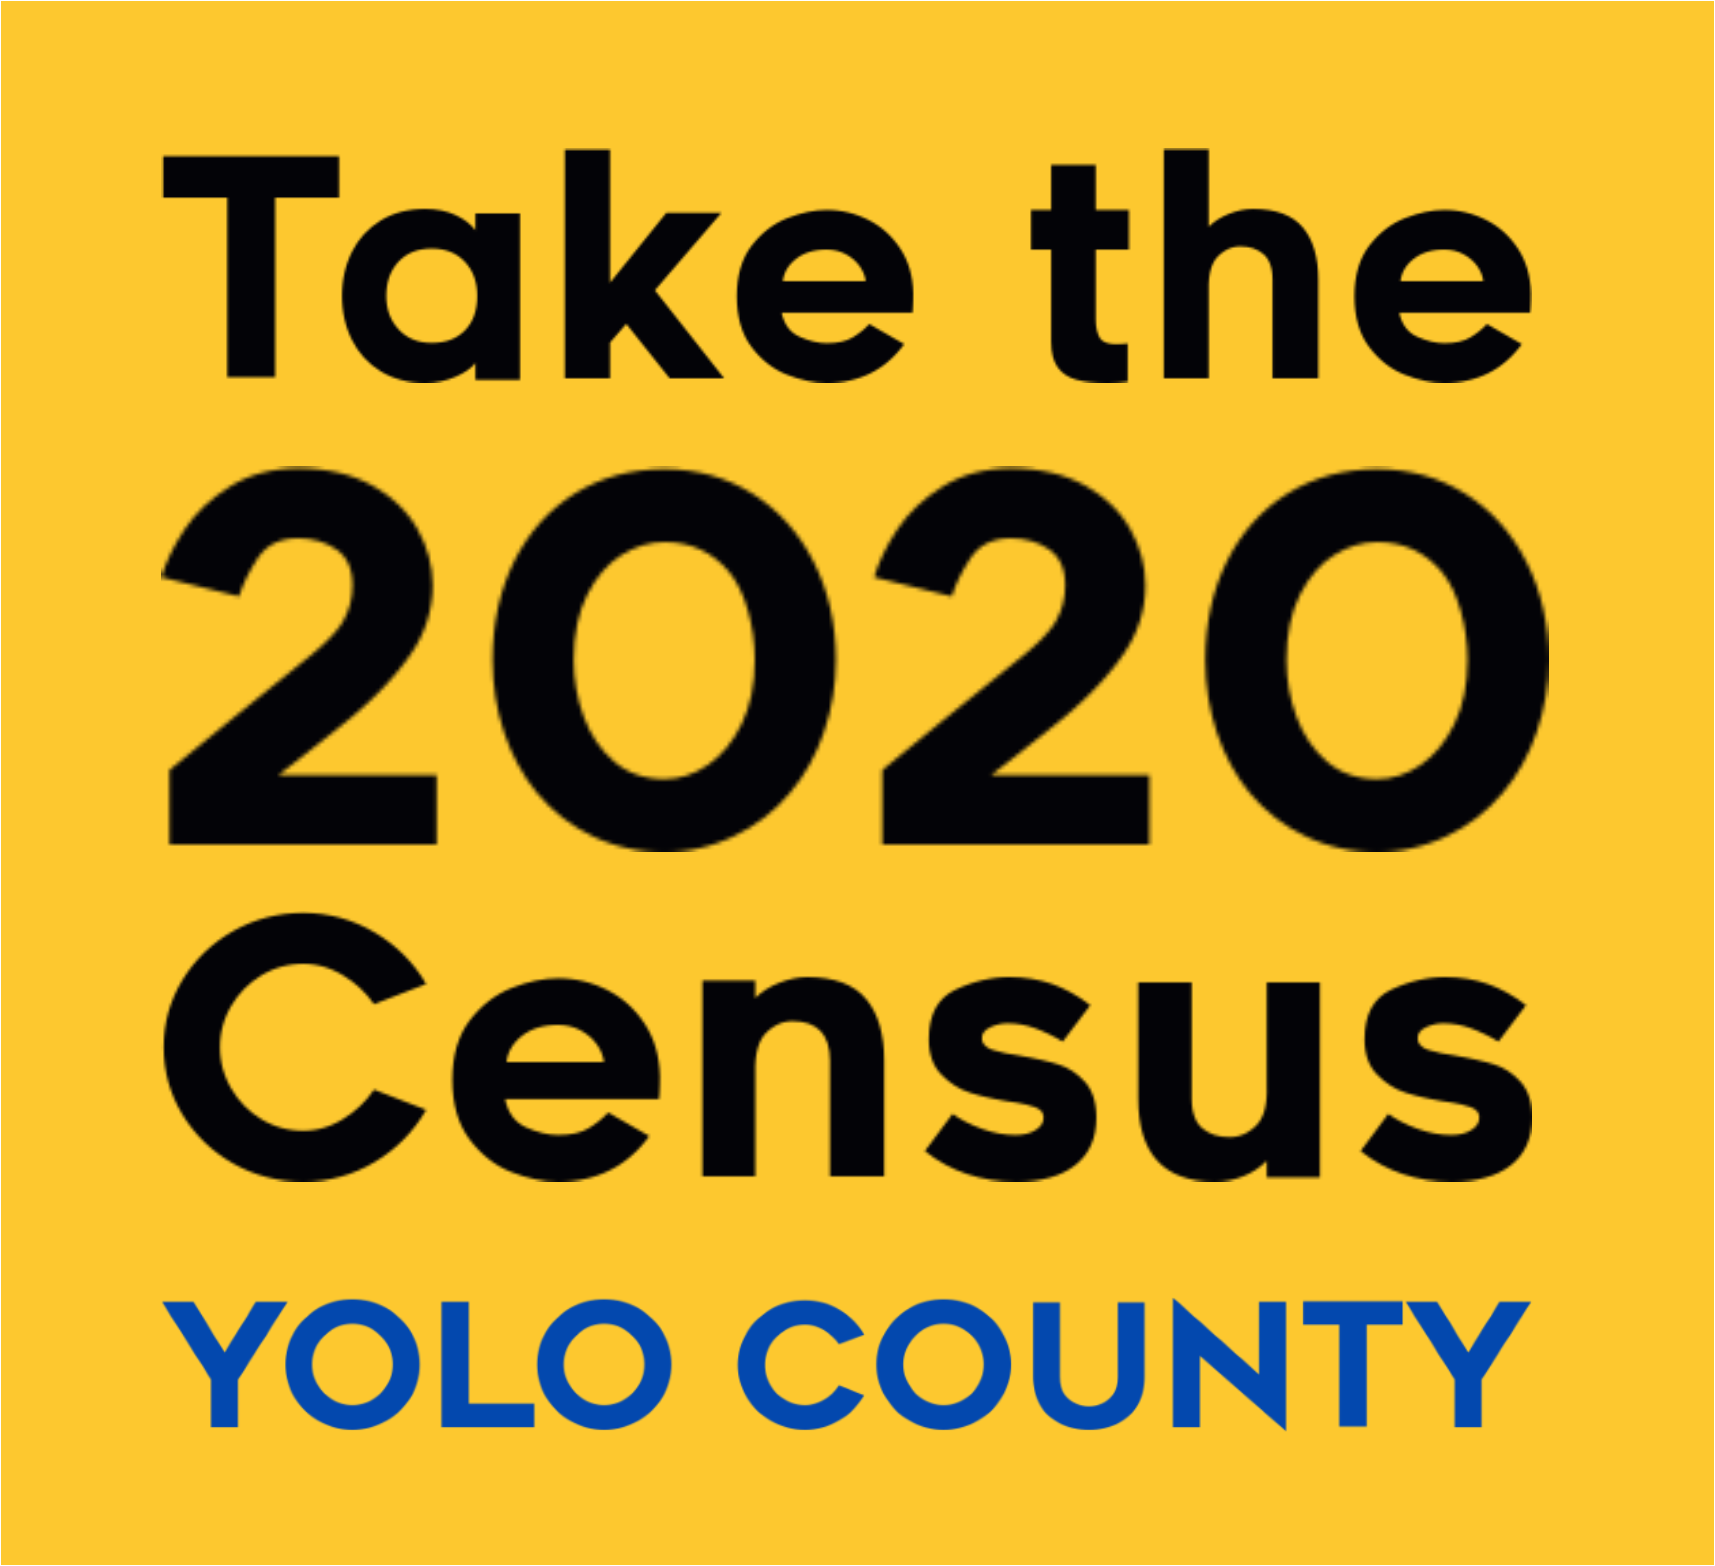 Words in black font: Take the 2020 Census Yolo County